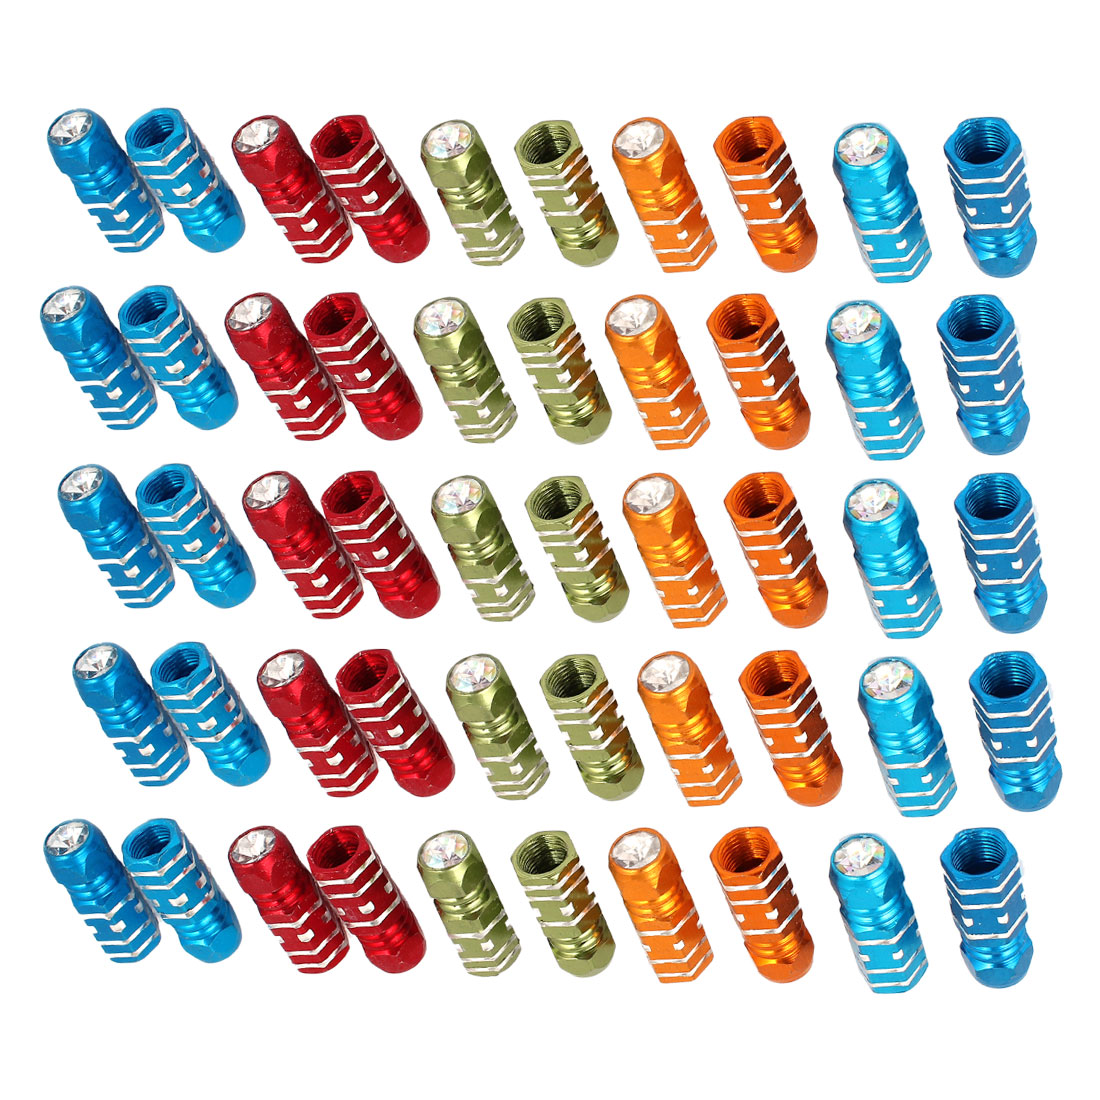 25 Pairs Hexagon Design Tyre Tire Valve Stems Caps Covers Protector for Car